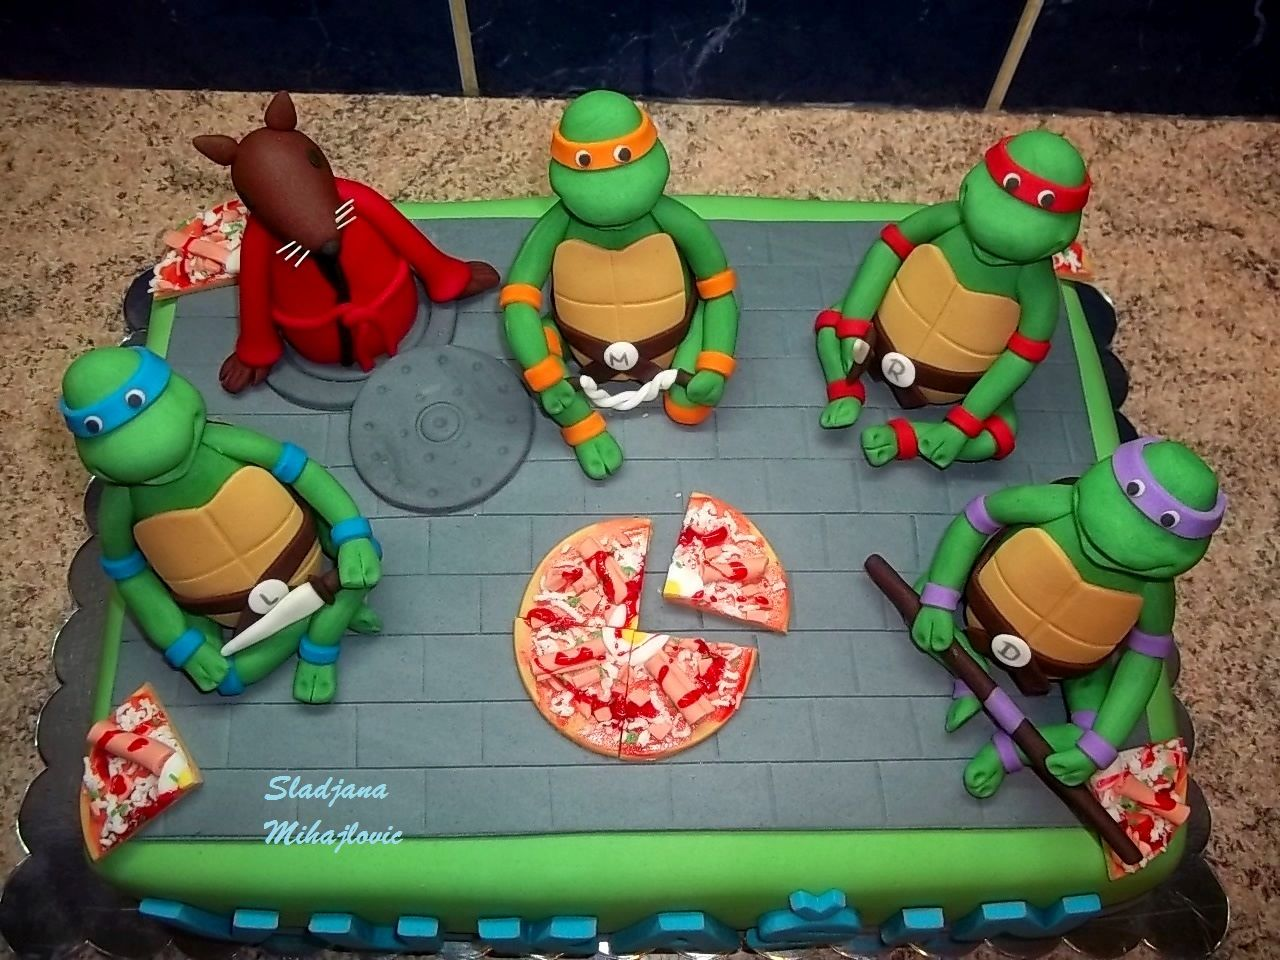 Best 25 Ninja turtles splinter ideas on Pinterest Ninja turtles